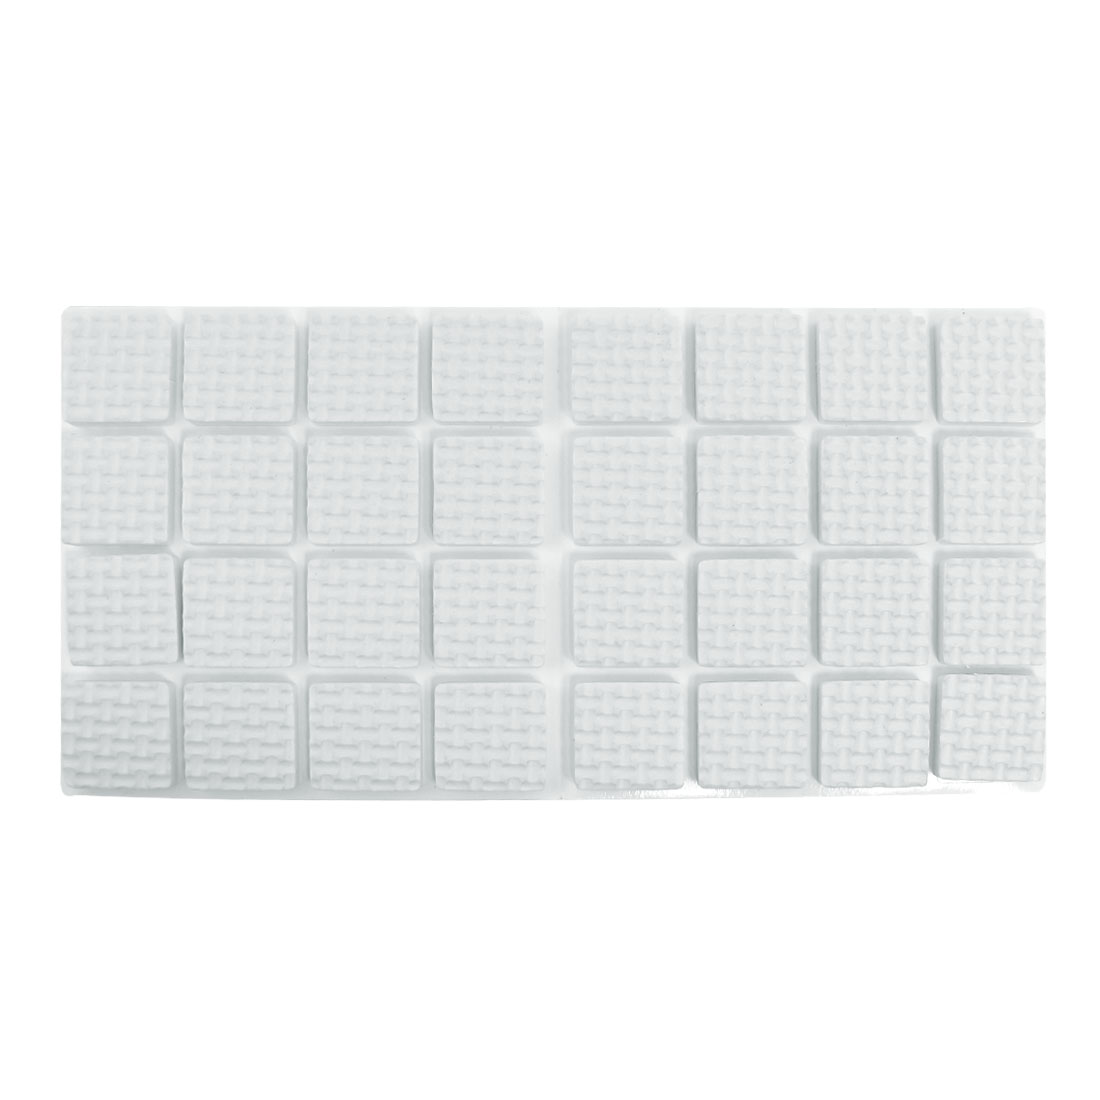 32 Pcs White Synthetic Fiber Adhesive Square Table Chair Leg Pad